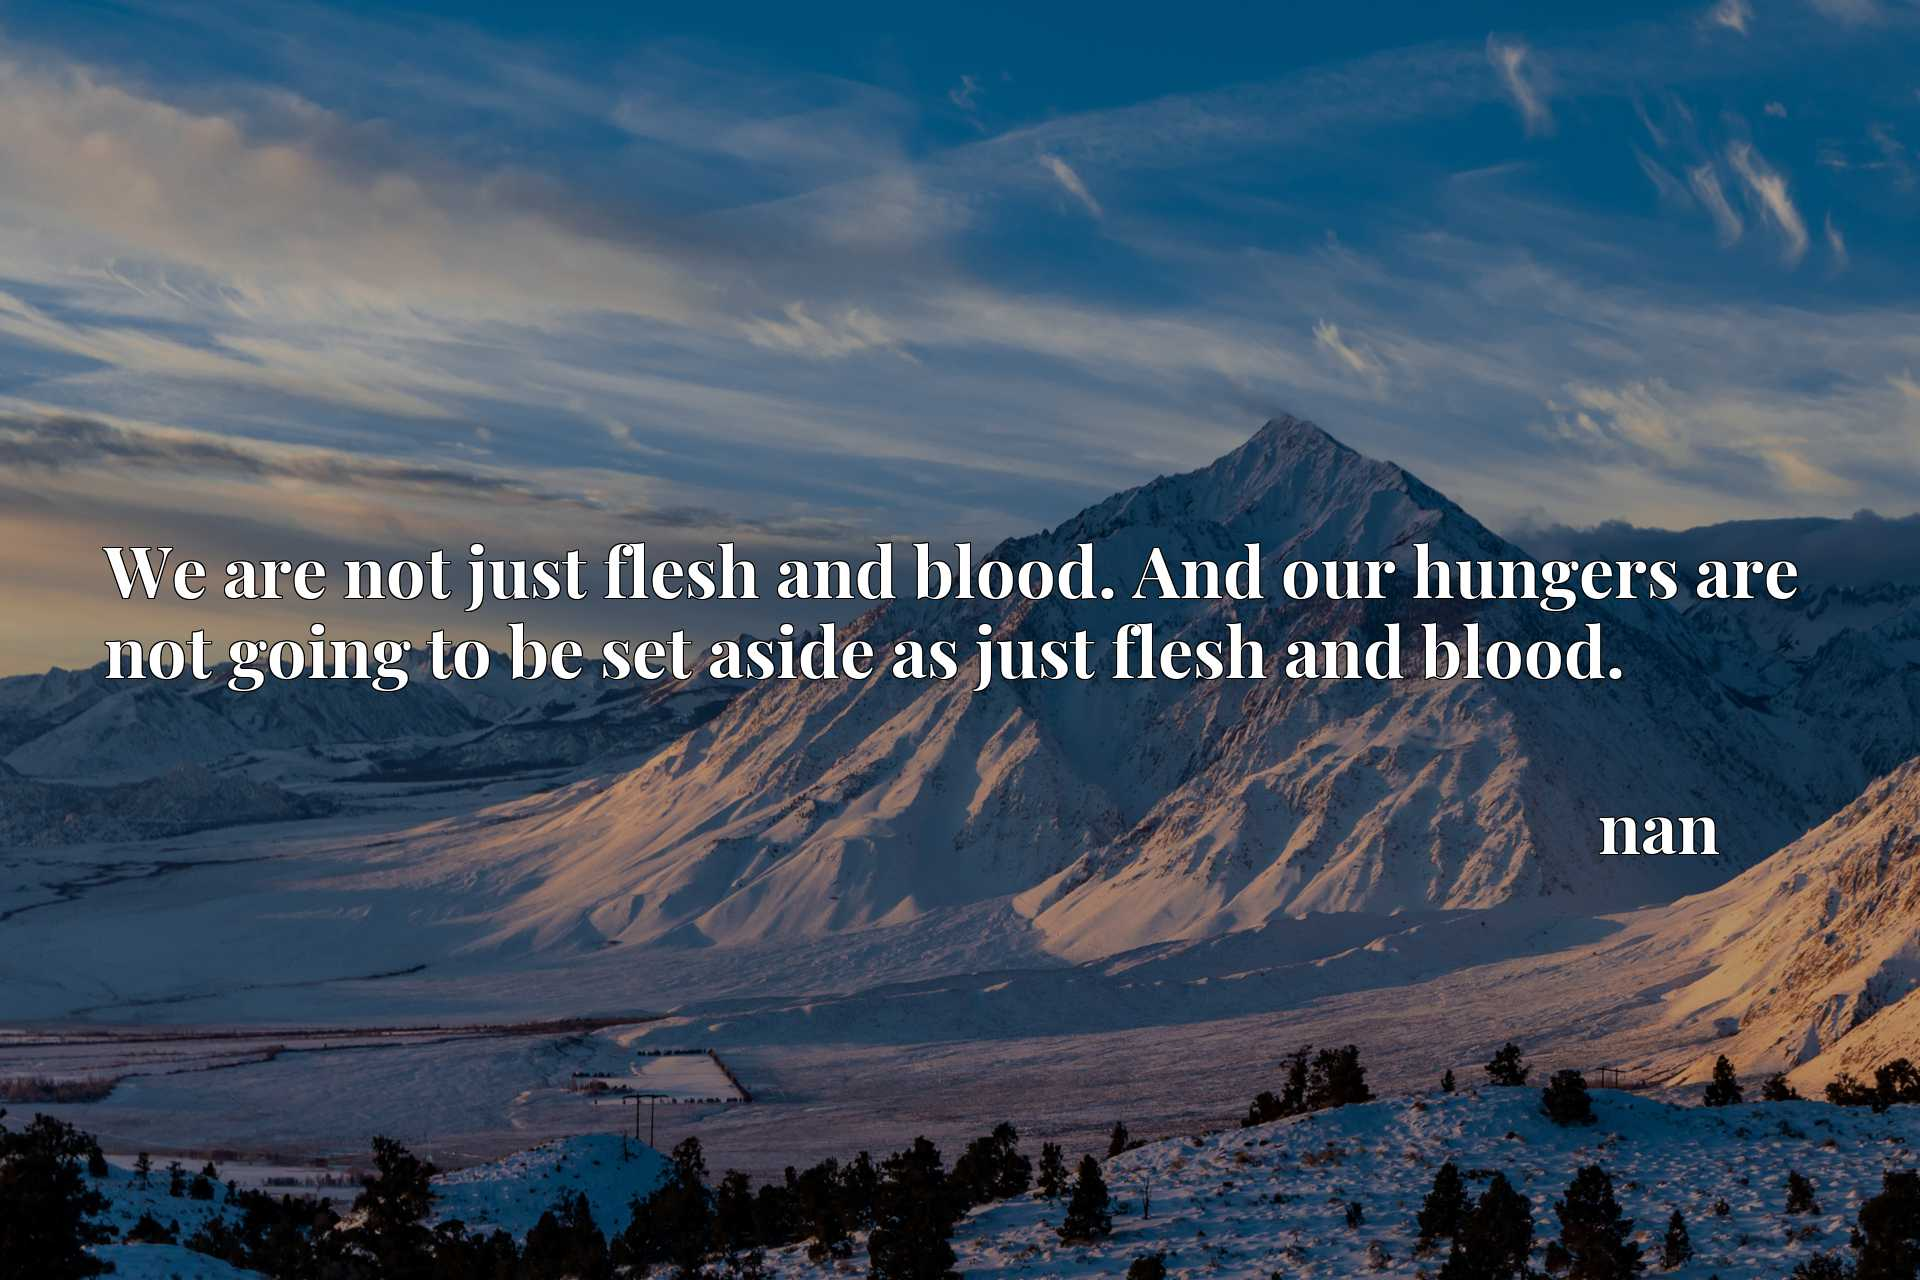 We are not just flesh and blood. And our hungers are not going to be set aside as just flesh and blood.